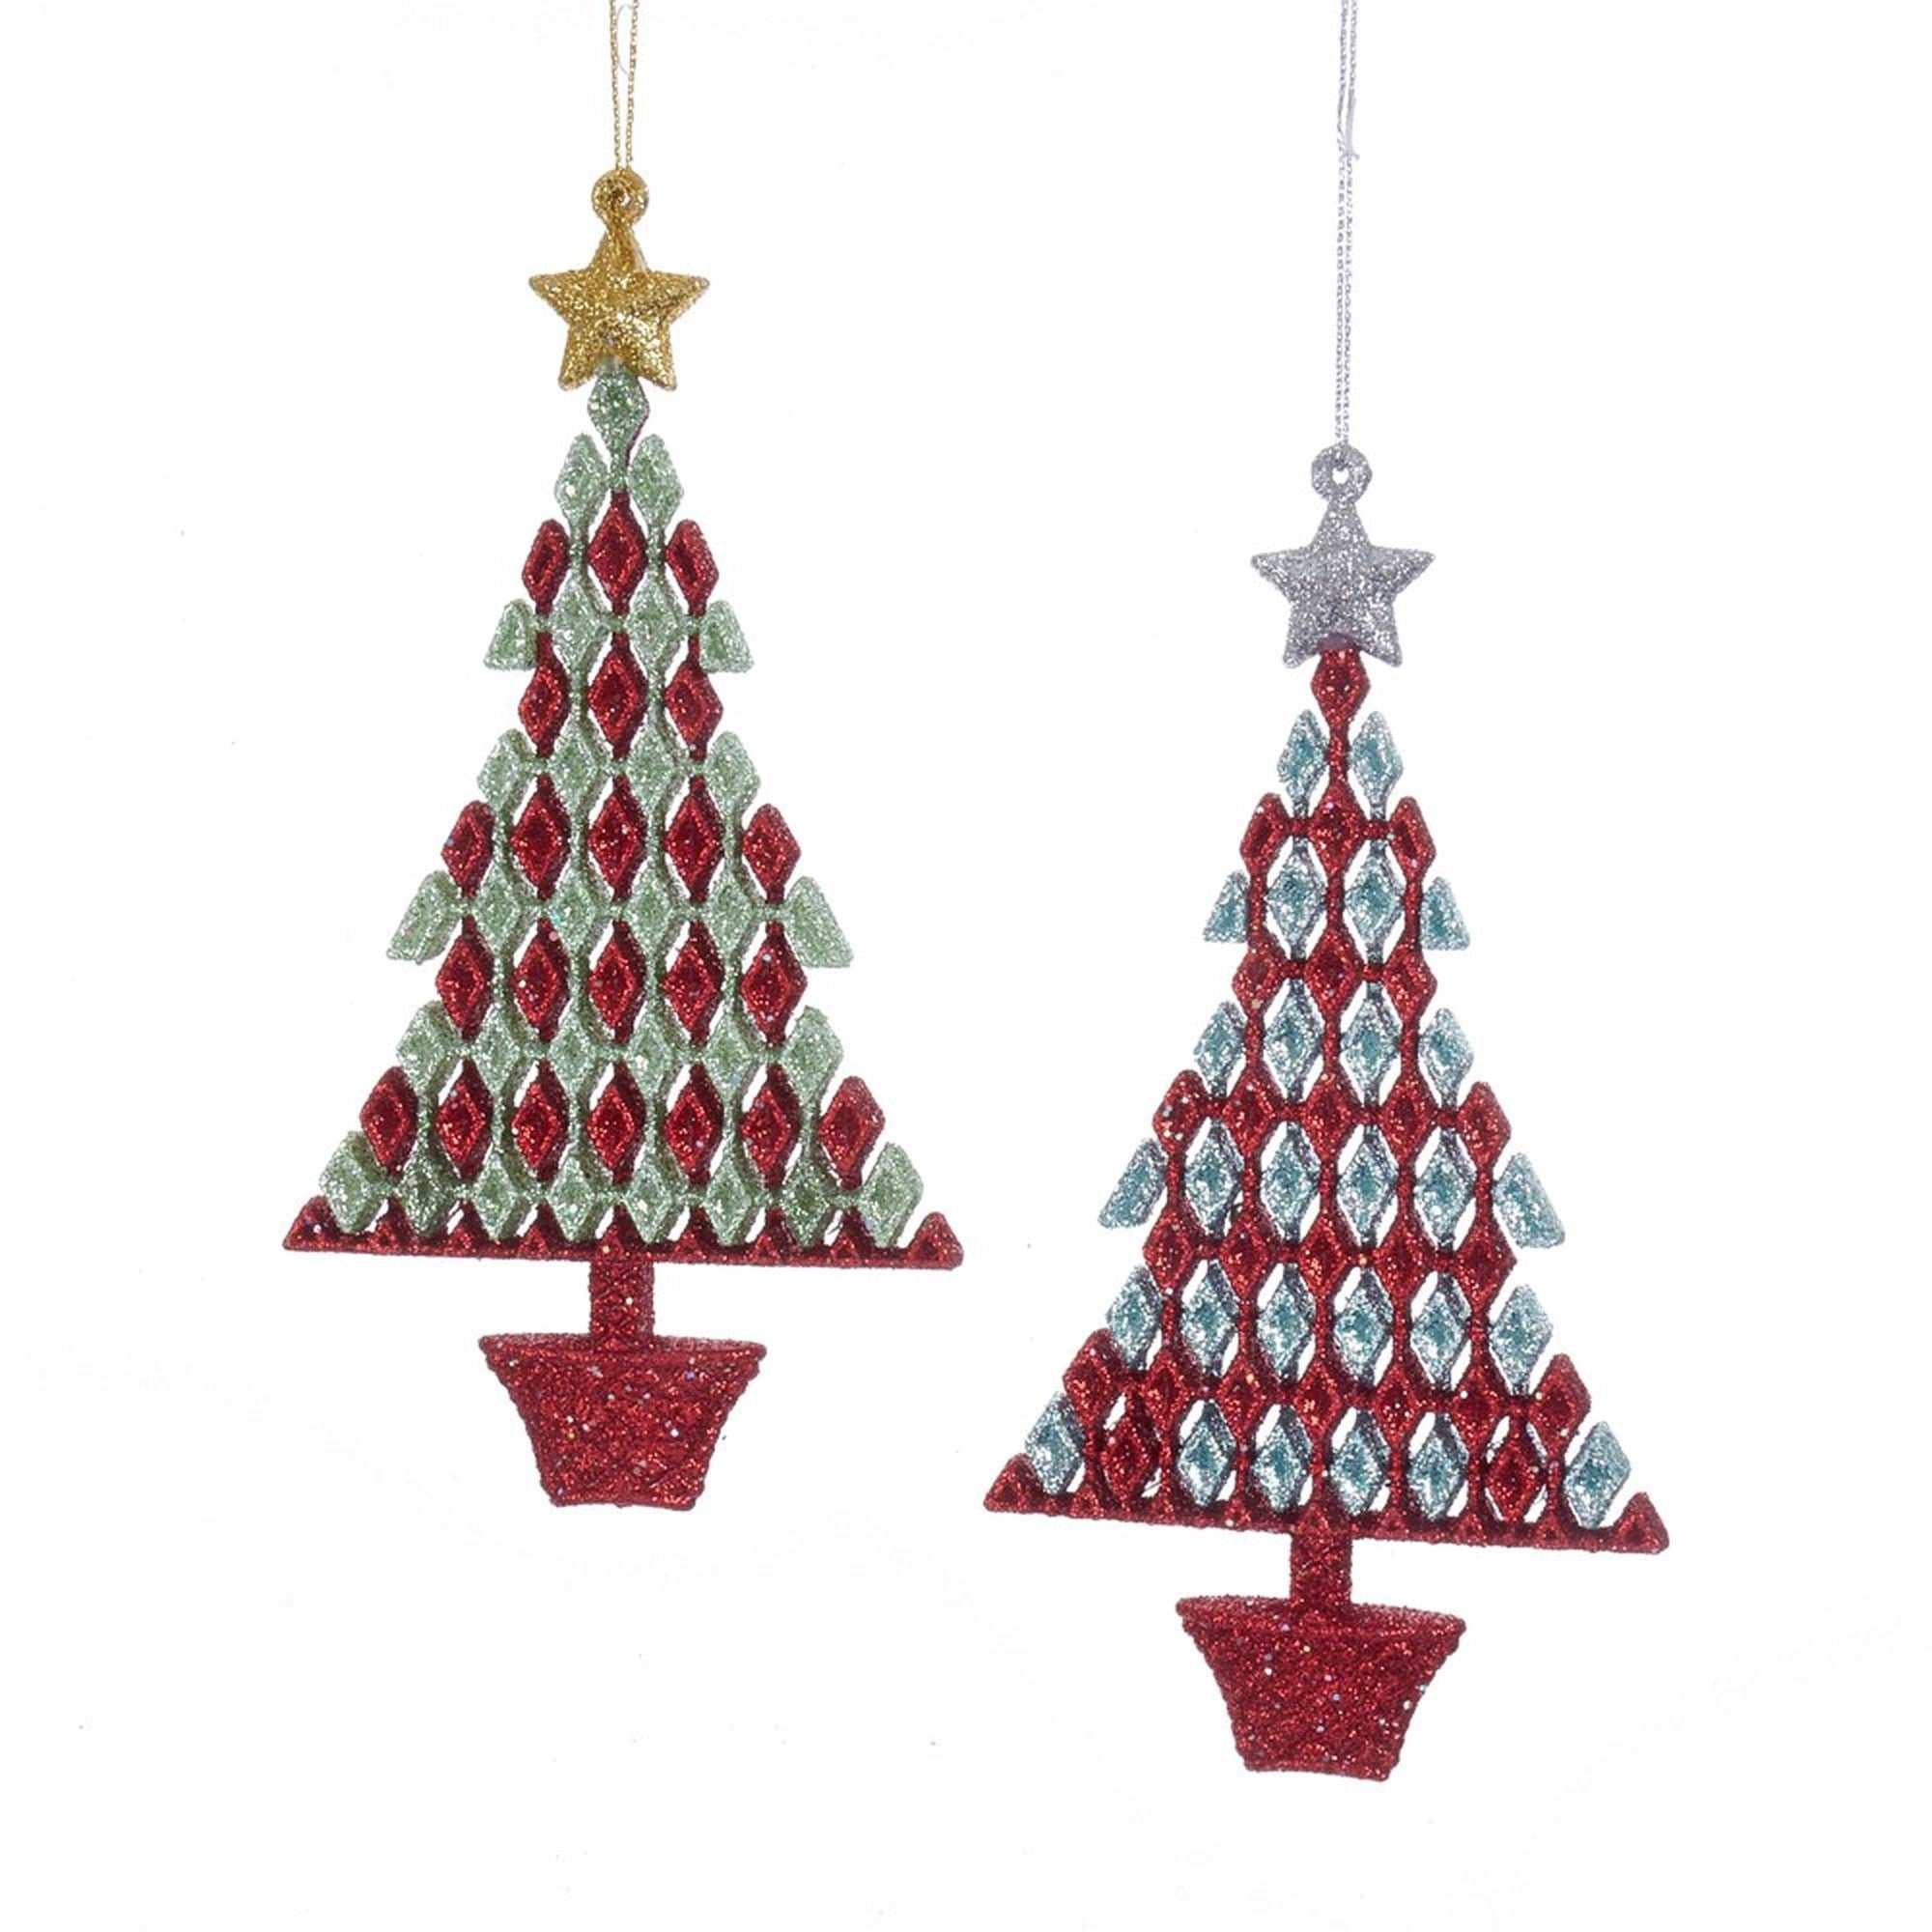 Kurt Adler Red, Green and Aqua Christmas Tree Ornaments - Putti Christmas